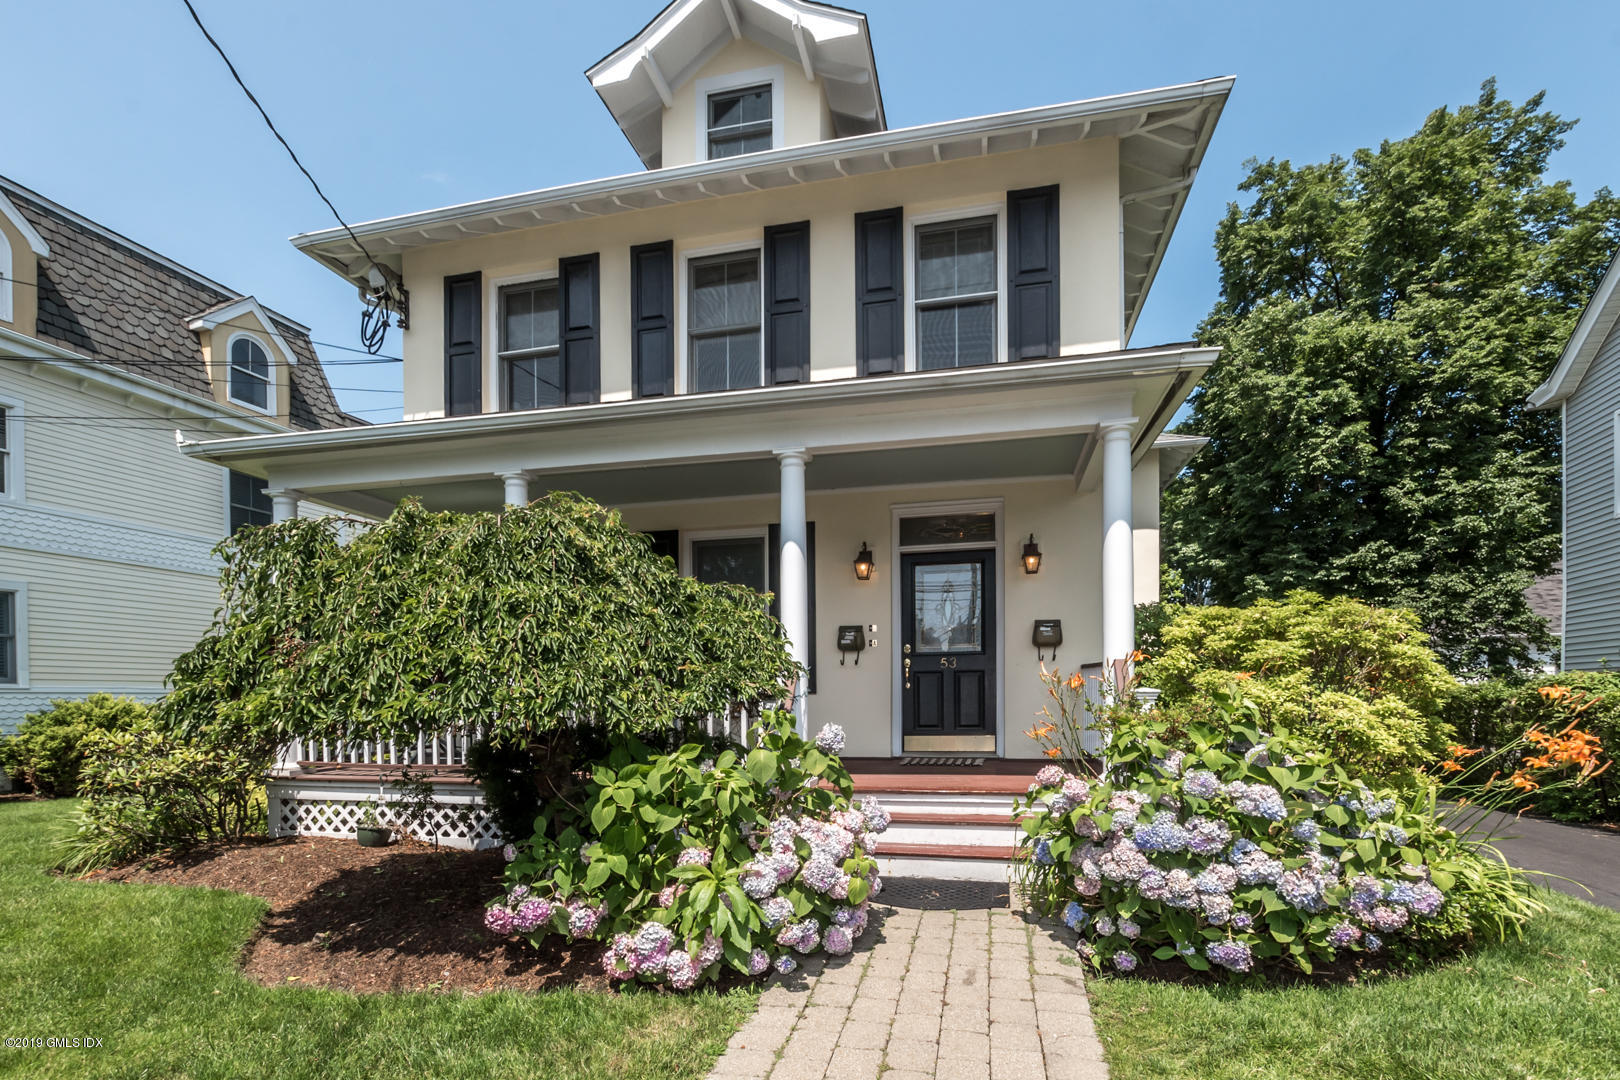 53 William Street, Greenwich, Connecticut 06830, 3 Bedrooms Bedrooms, ,2 BathroomsBathrooms,Condominium,For sale,William,107287